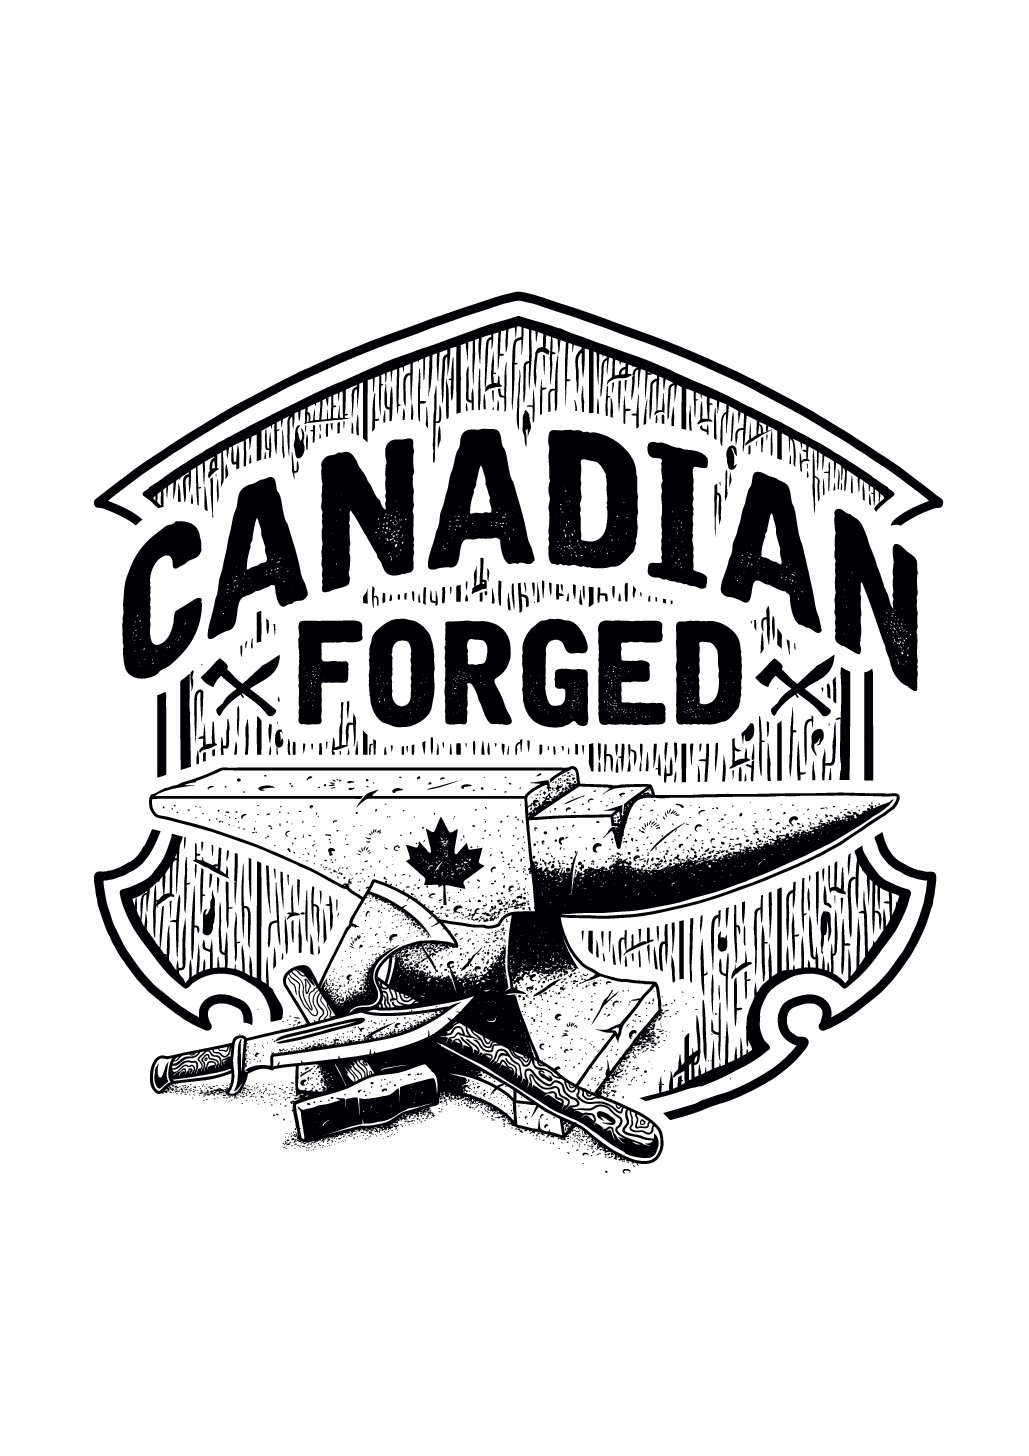 A design to encompass canadian values and our beginnings of rugged explorers and a wild land